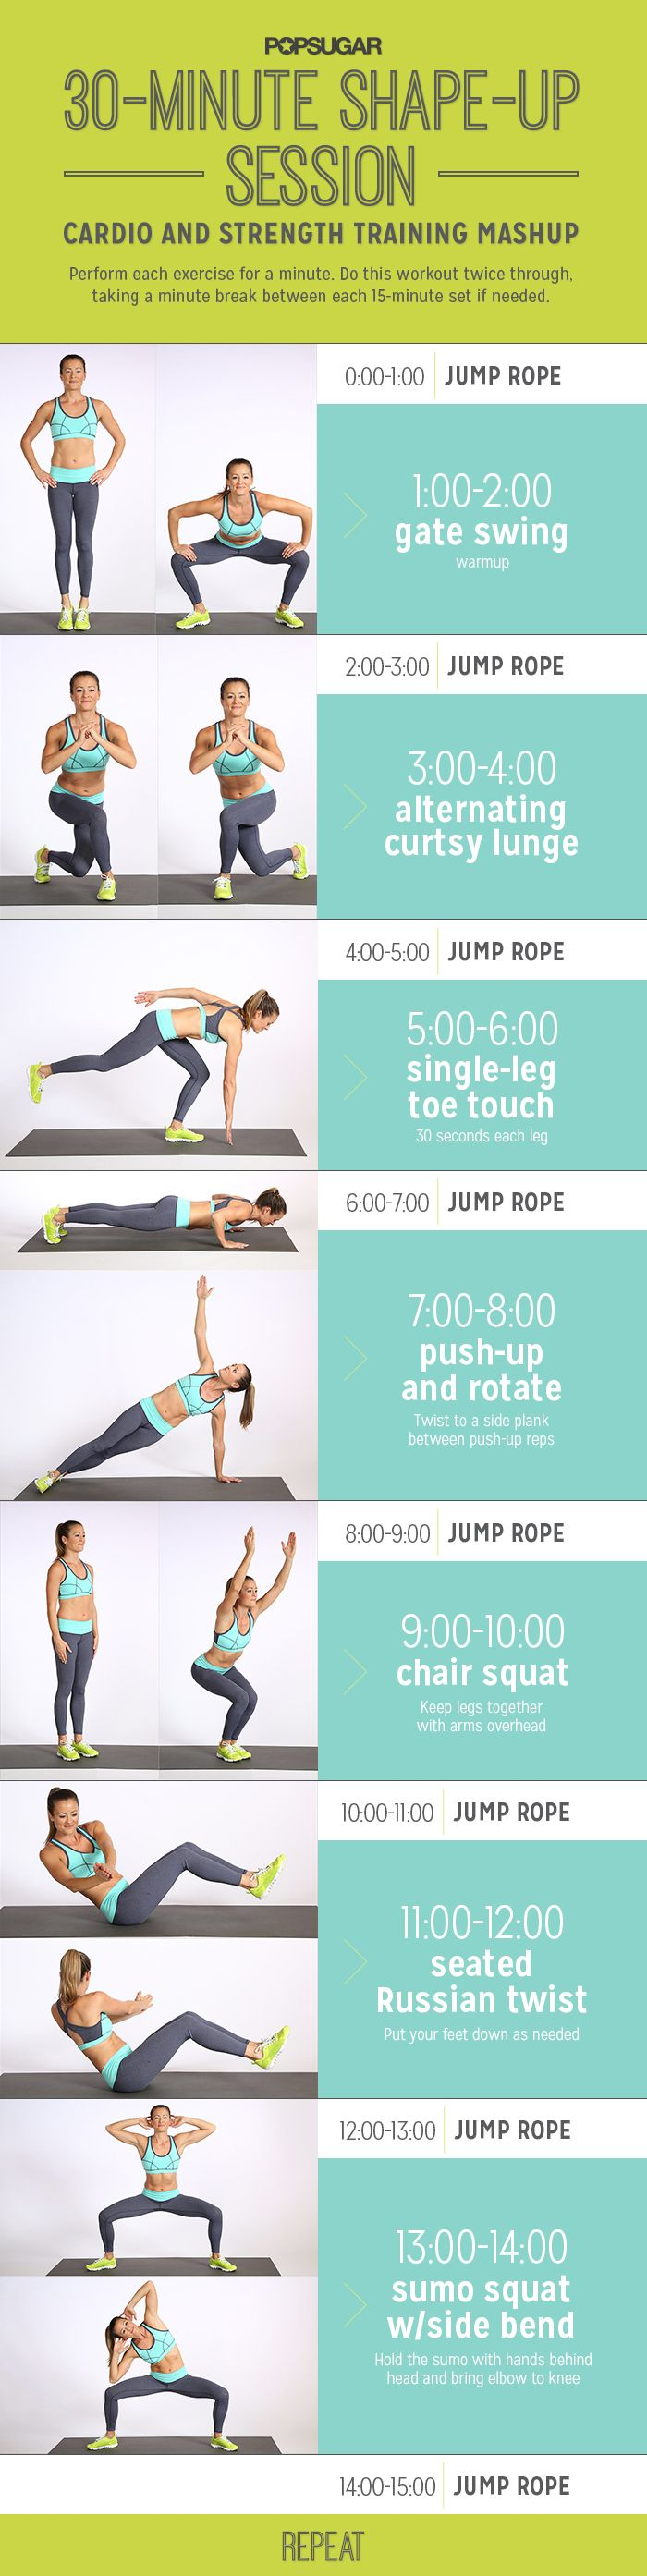 Printable Workout: 30 Minutes Cardio and Strength Training